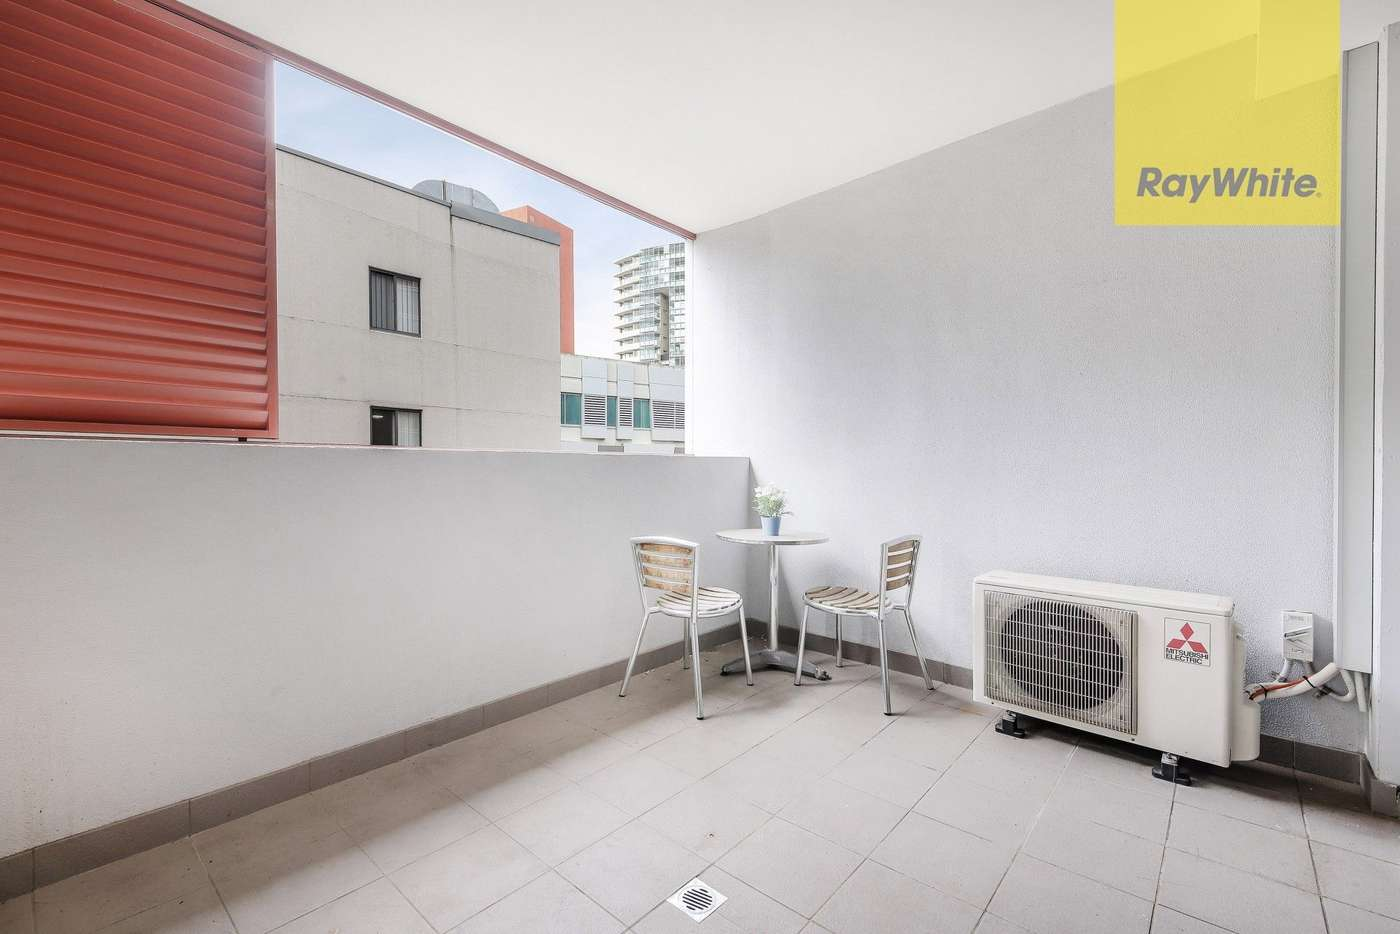 Sixth view of Homely apartment listing, 402/6-10 Charles Street, Parramatta NSW 2150